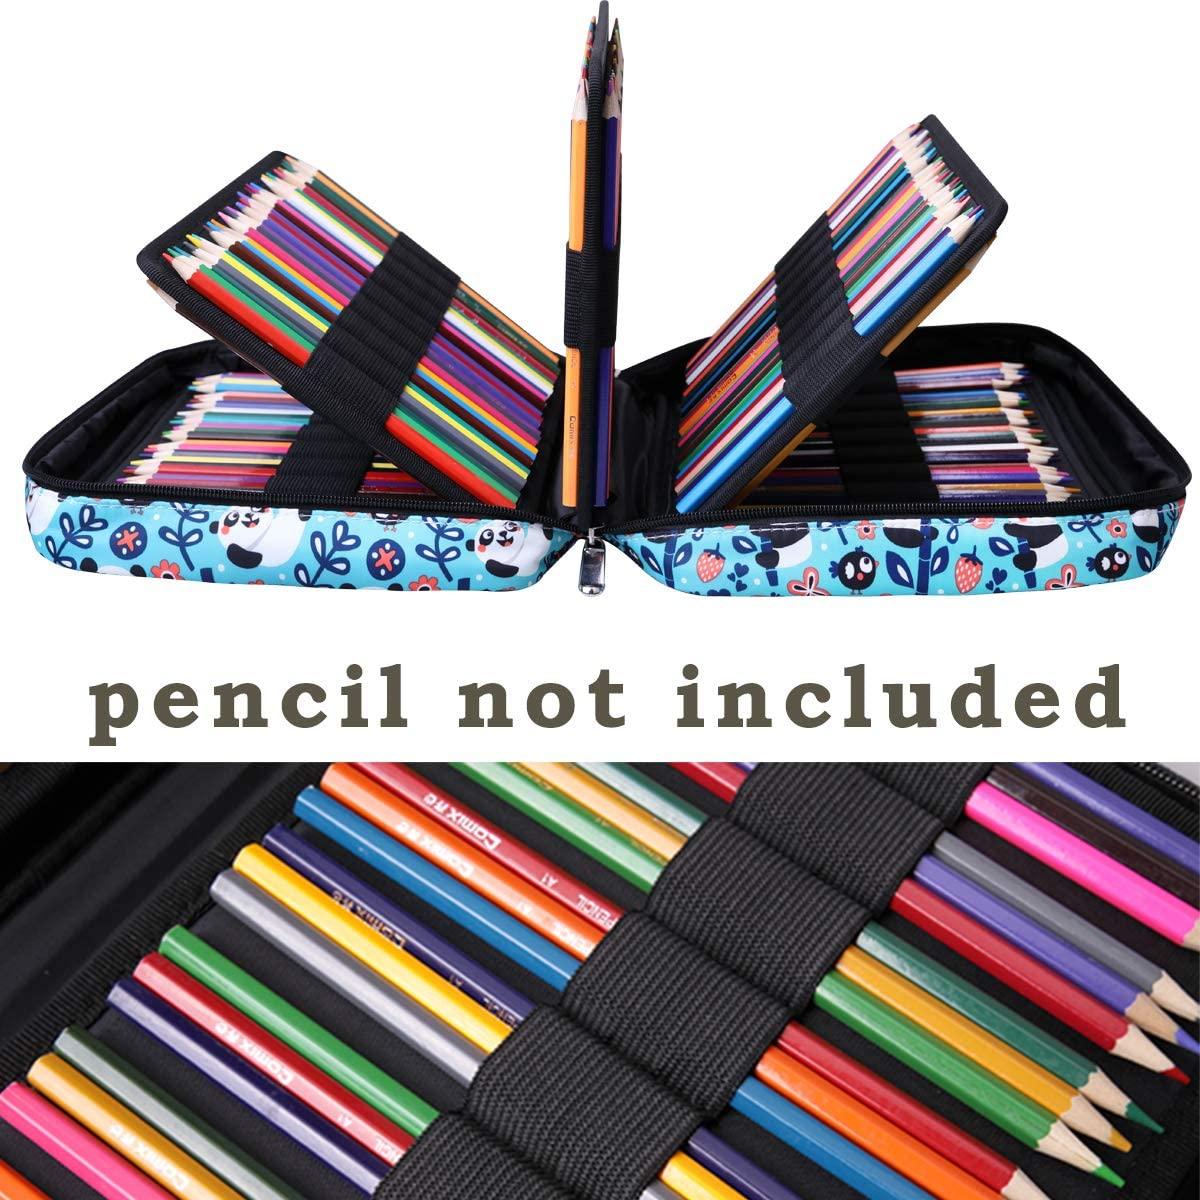 Highlighters Great Gift for Students Painter Writers 220 Colored Pencil Case Multi Pencil Holder Large Capacity Pen Organizer Bag for Watercolor Pencils Brushes Markers,Gel Pens Blue